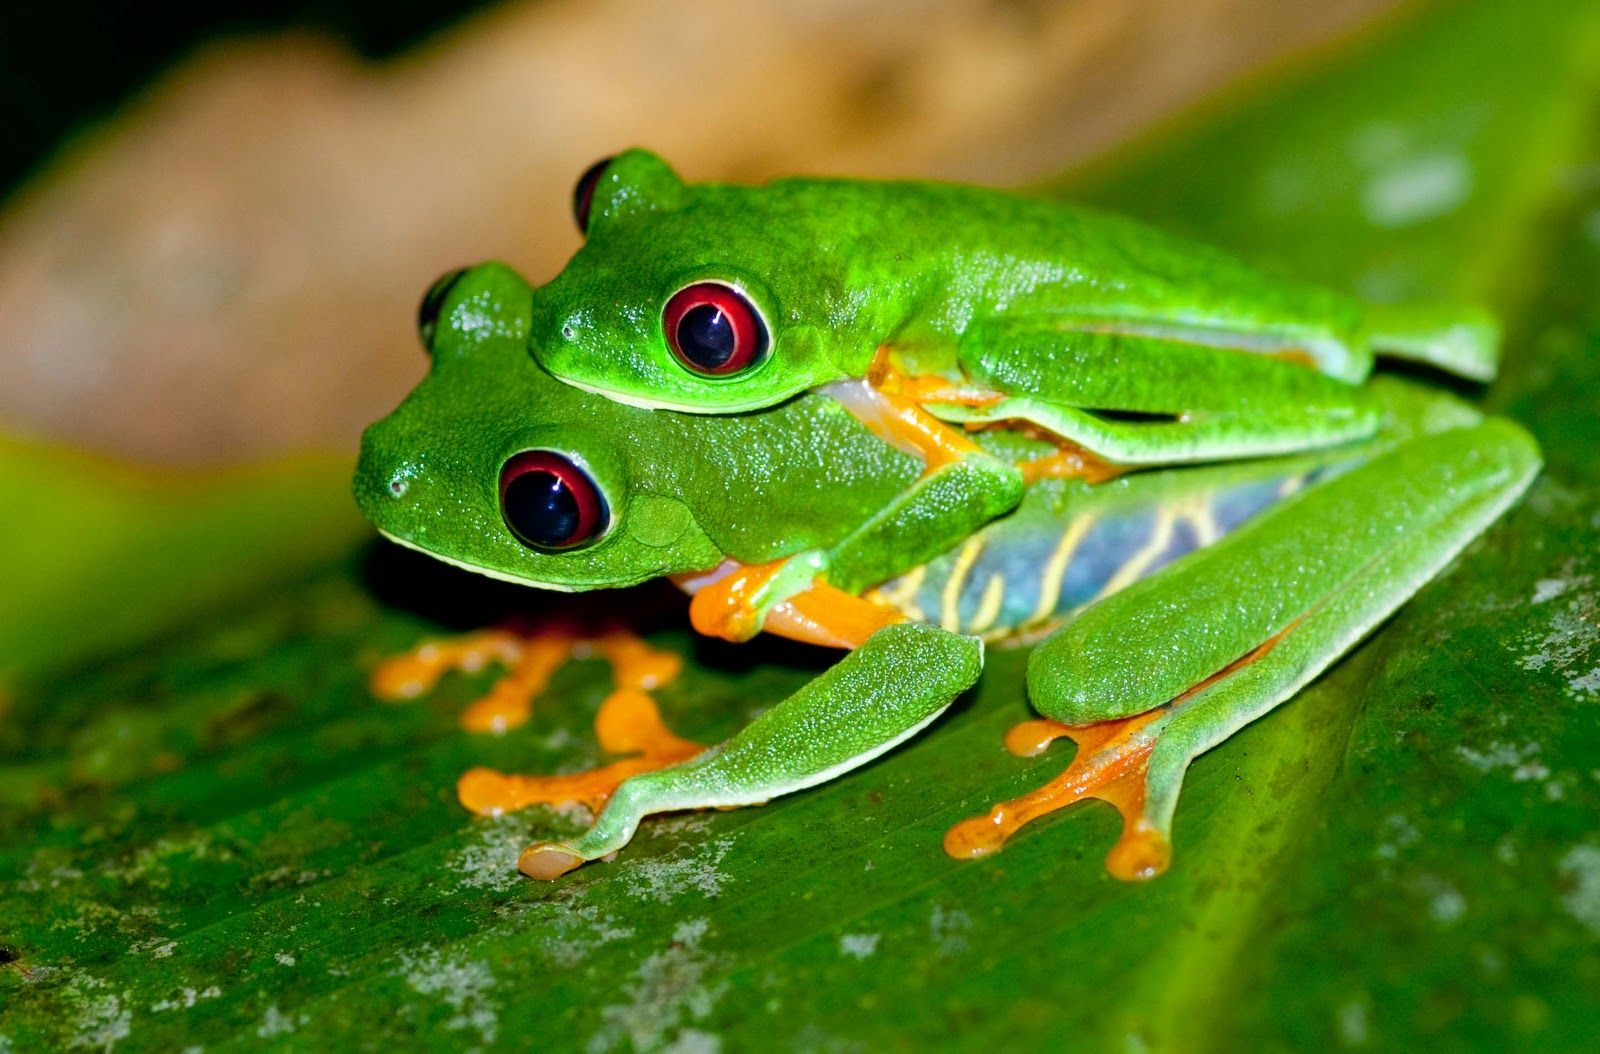 a baby red eyed treefrog normally sticks with its mother intill old enough to live alone.